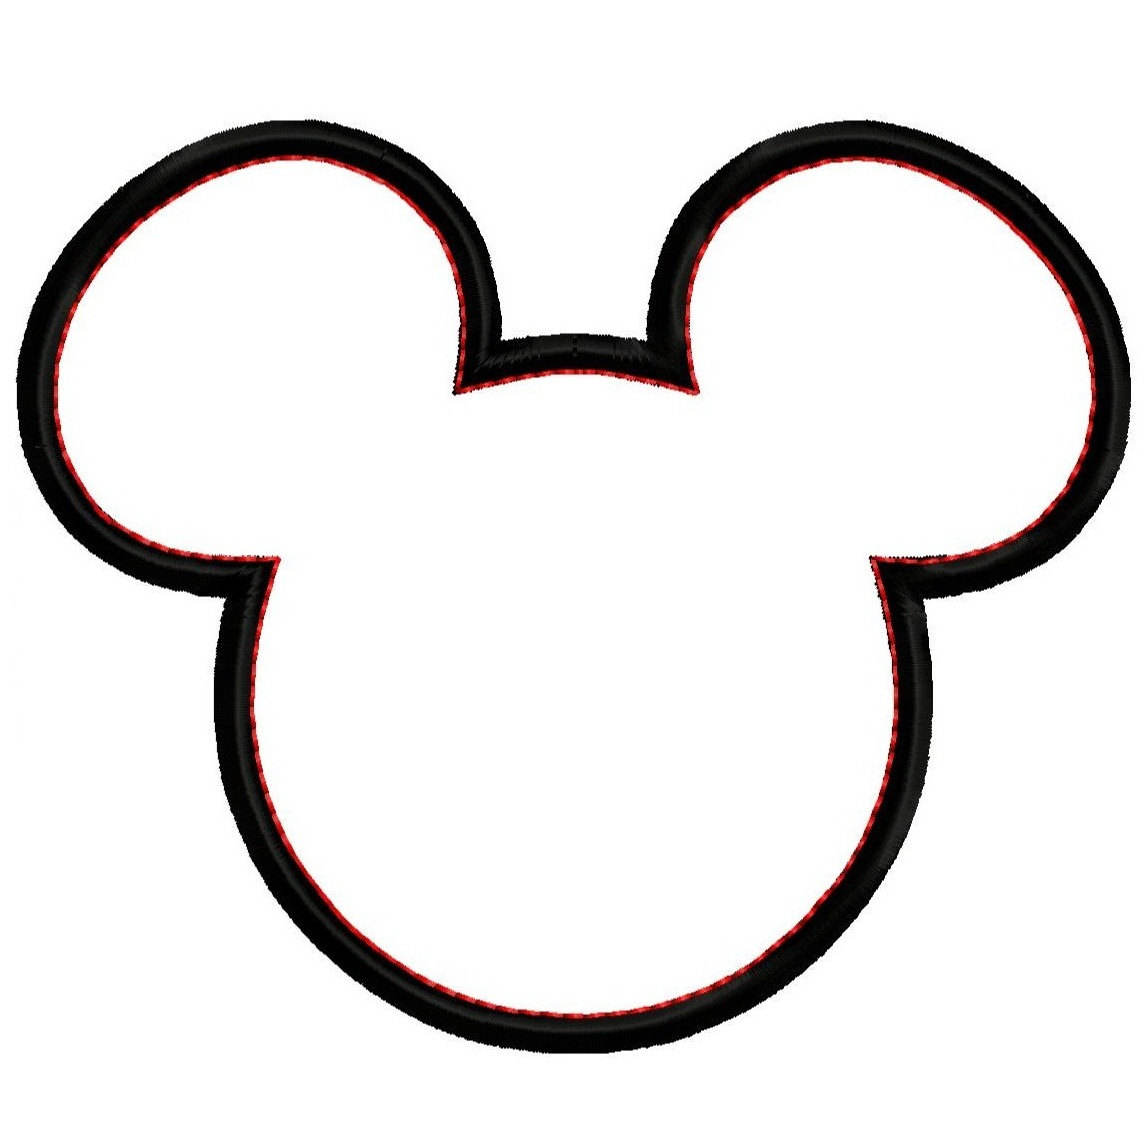 Mickey Head Clipart Mickey mouse head silhouette